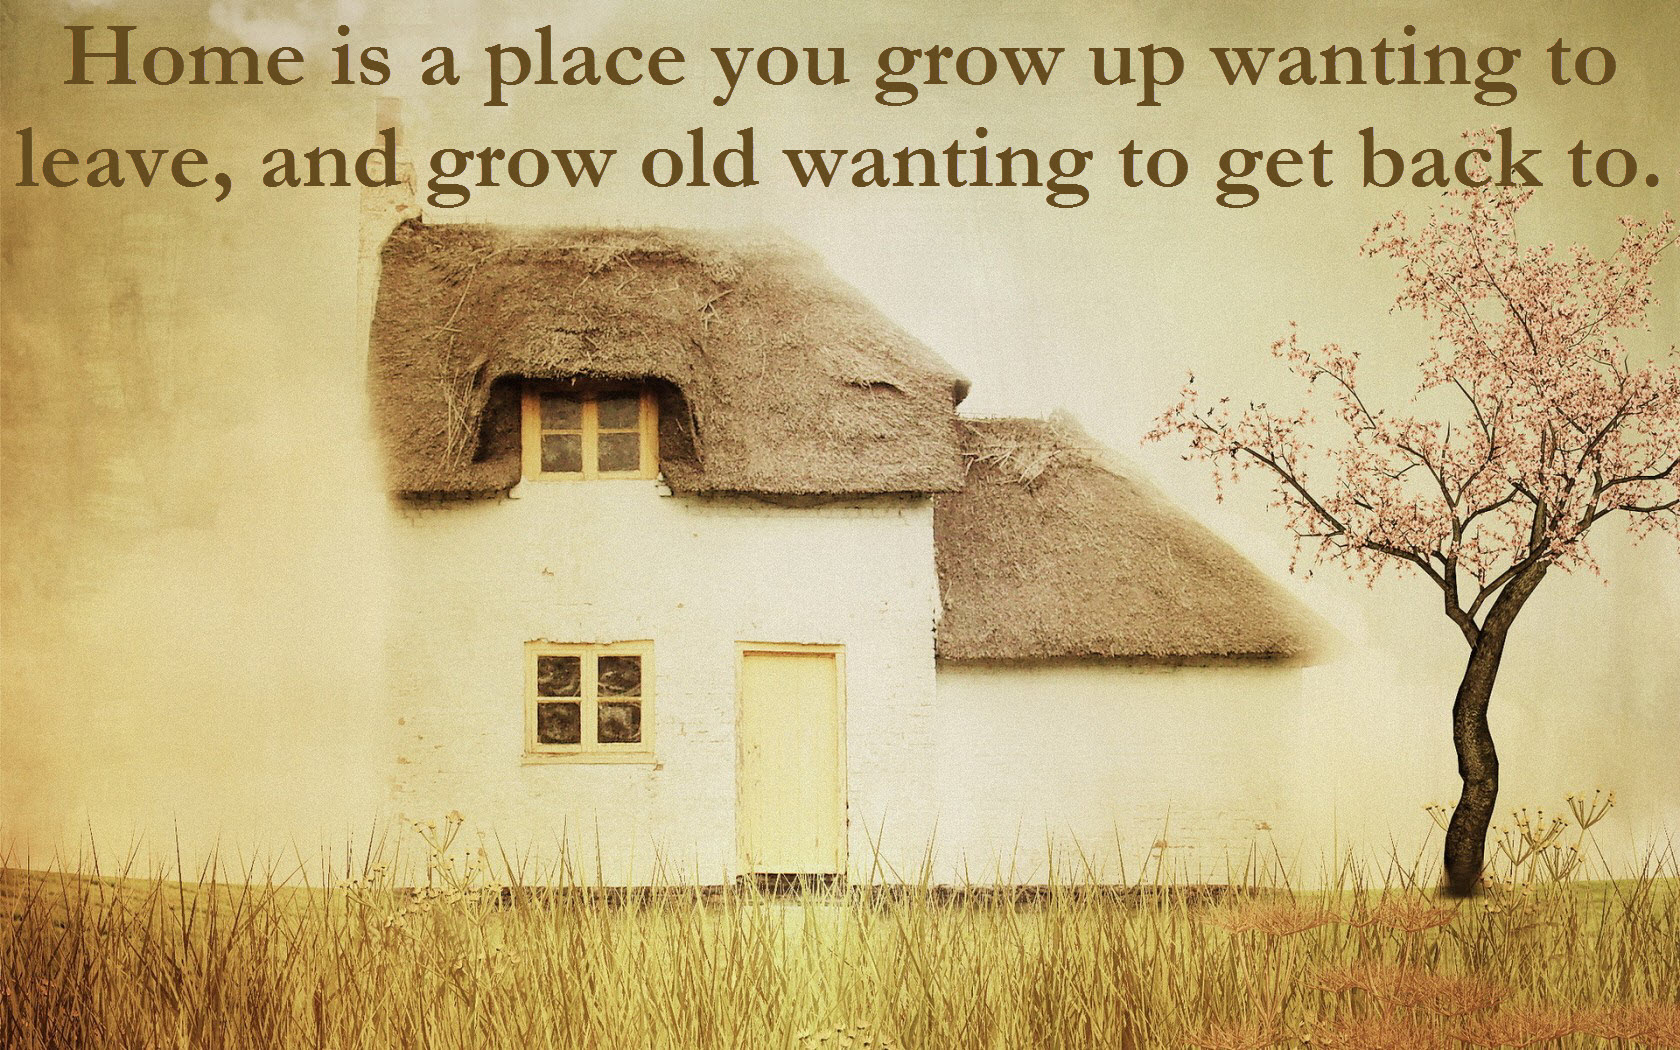 Resultado de imagen para home is a place you grow up wanting to leave and grow old wanting to get back to